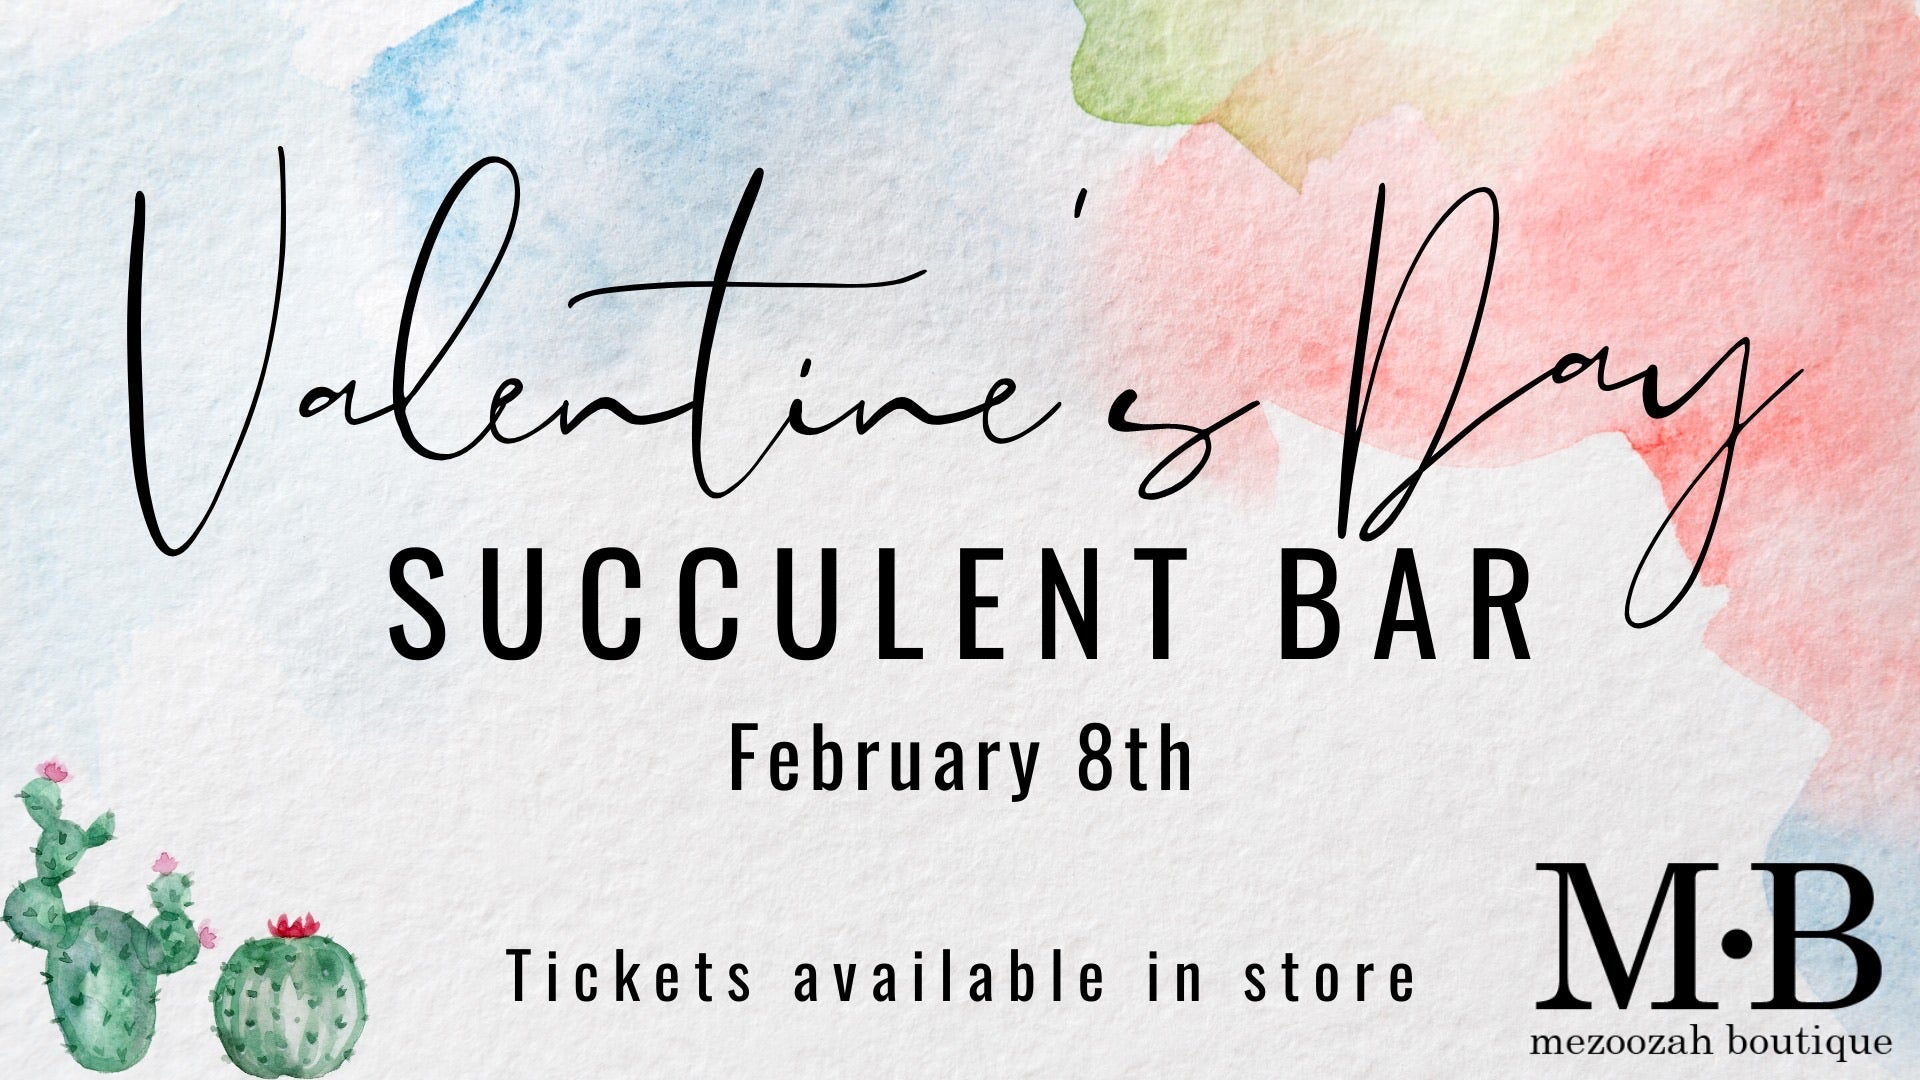 Succulent Bar TICKET